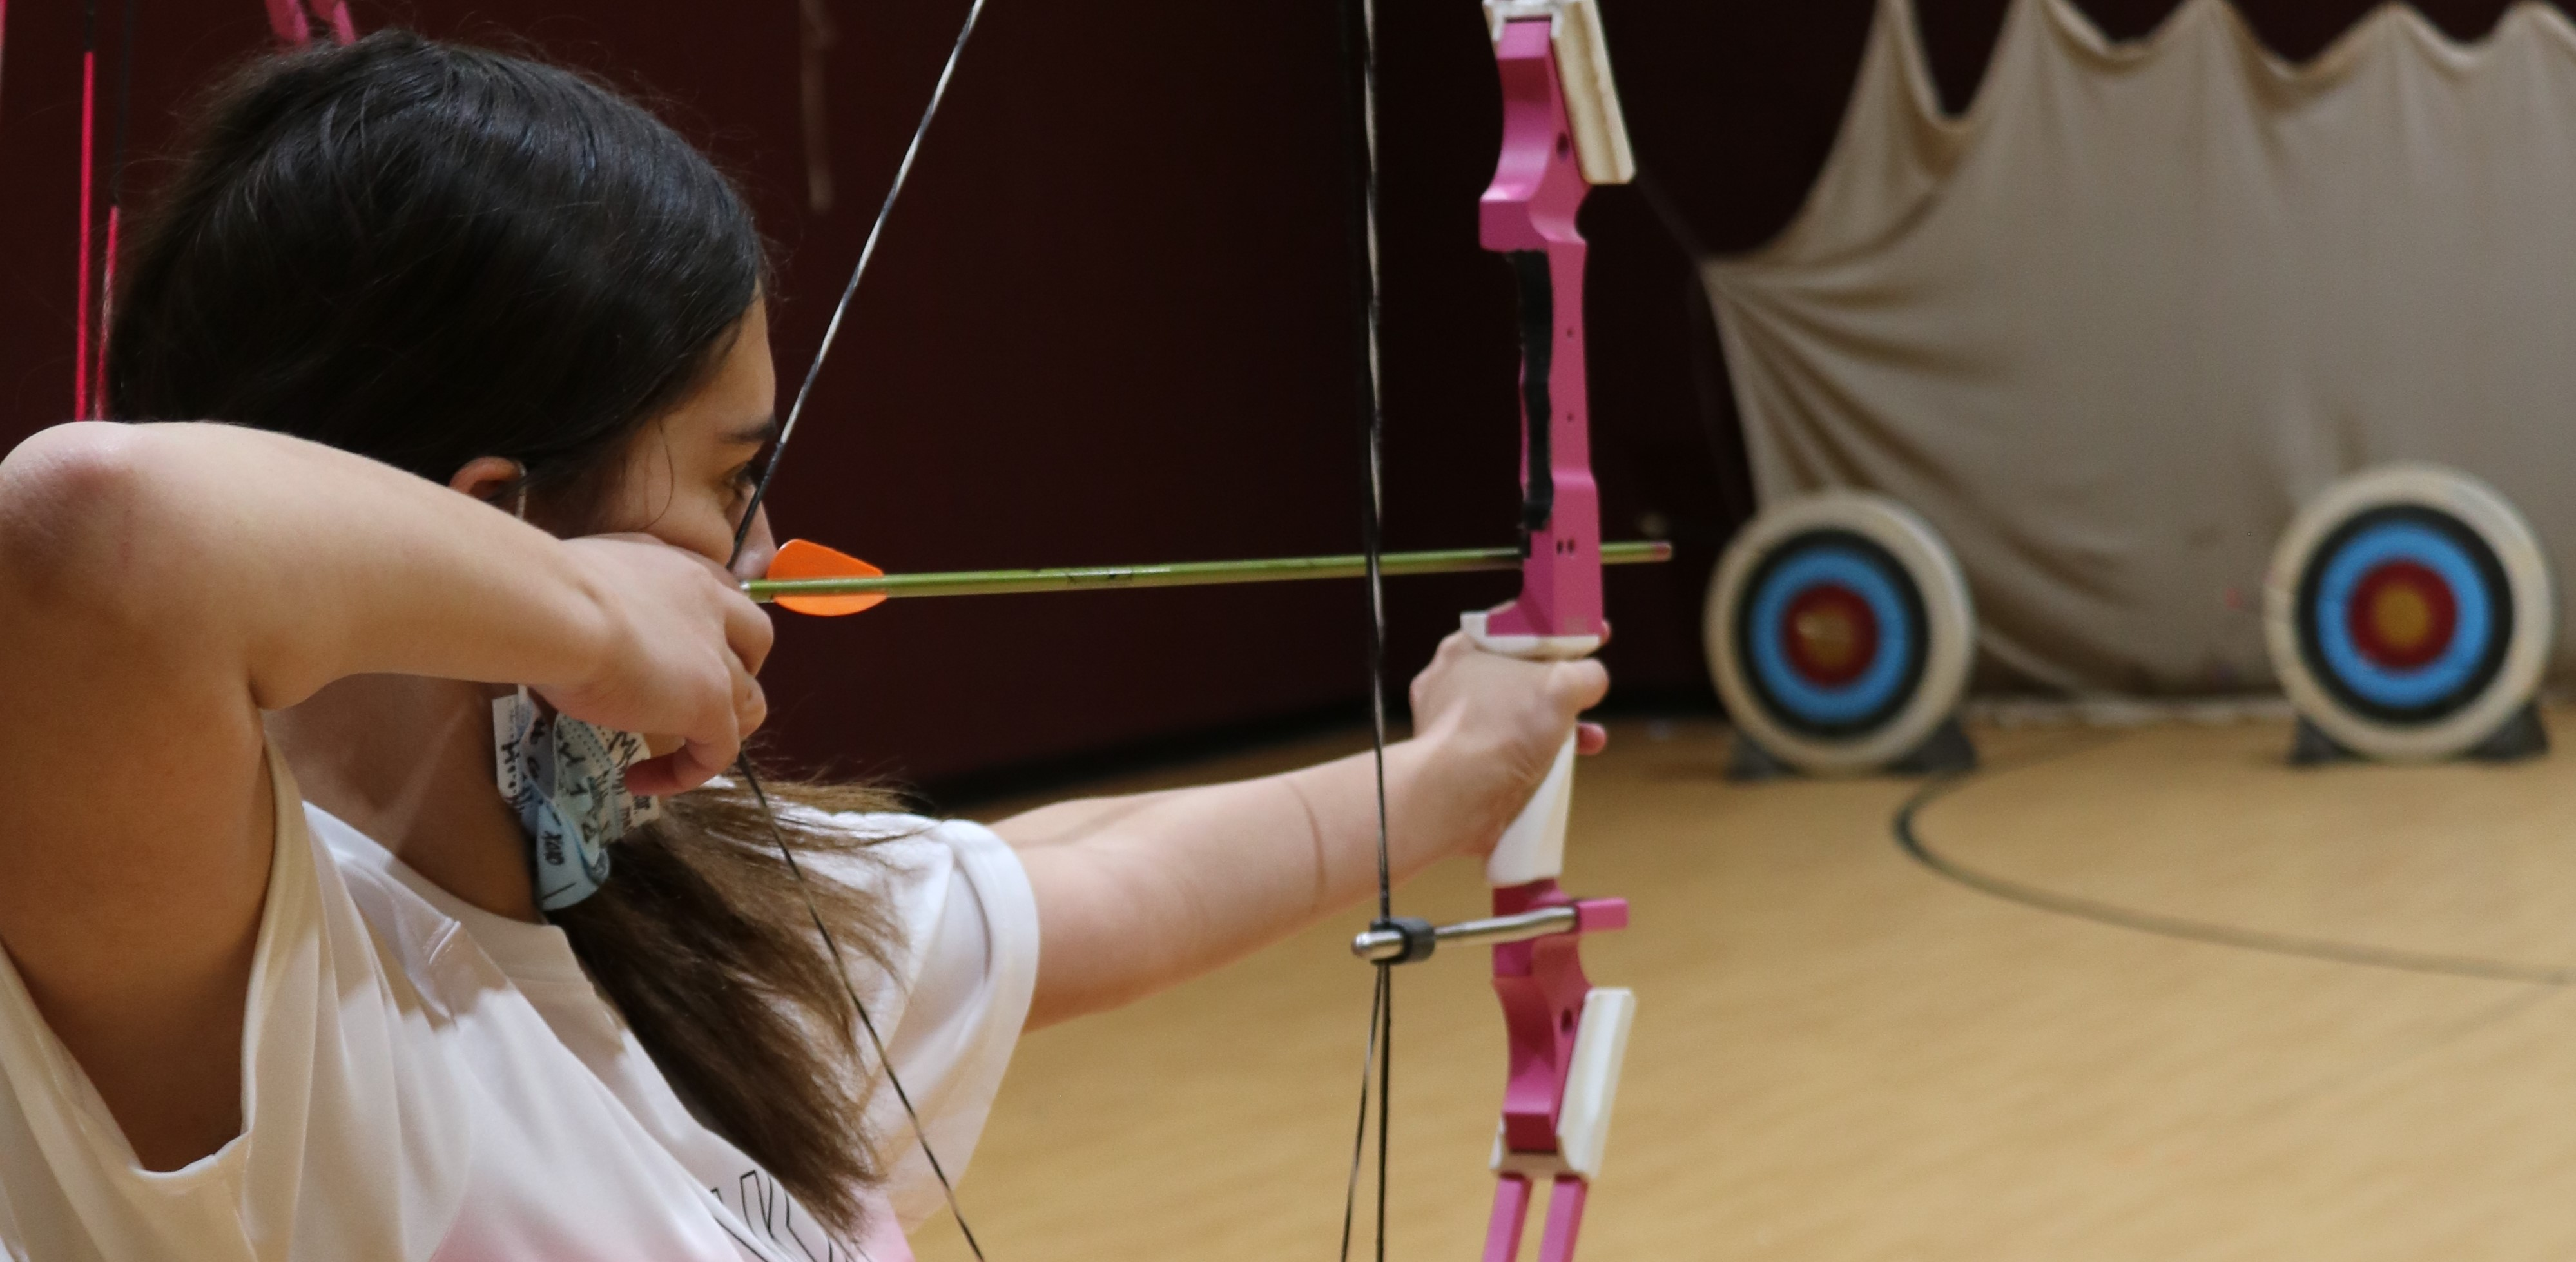 Archery Student Preparing to Shoot at Target